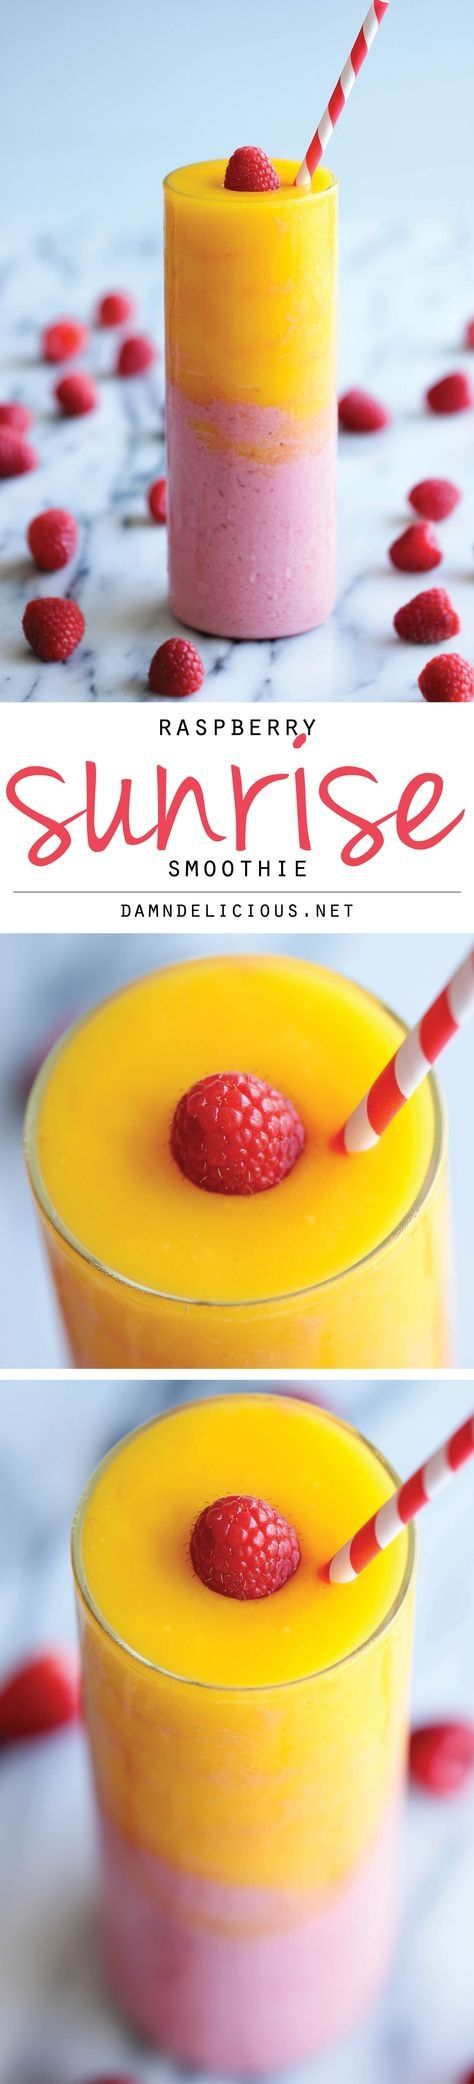 Raspberry Sunrise Smoothie - 4-ingredient raspberry mango smoothie - so easy and amazingly refreshing! #weightlosssmoothiesrecipes